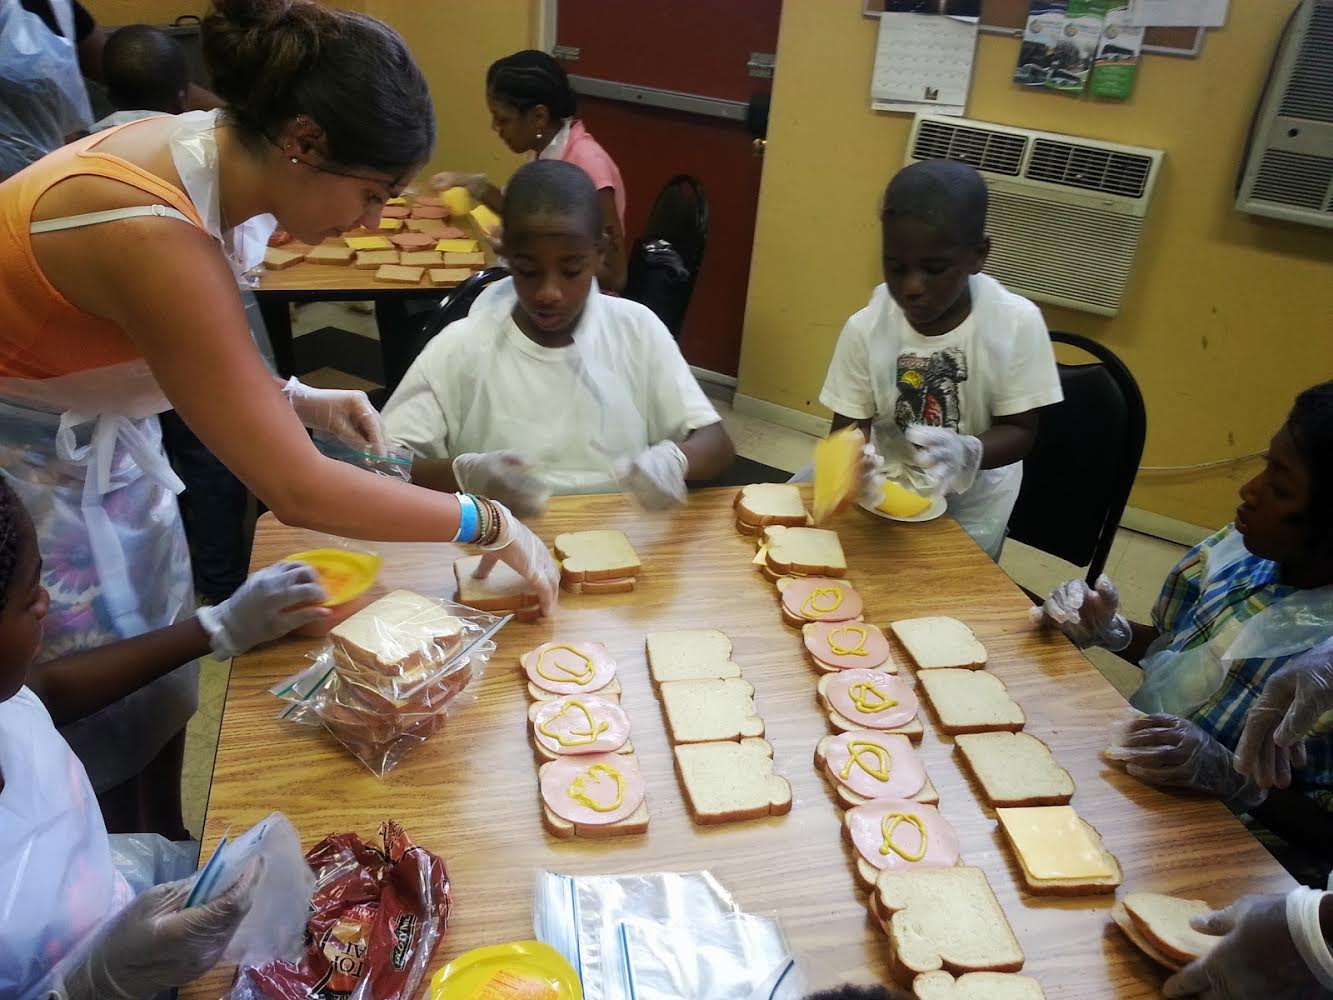 Making sandwiches for a local soup kitchen